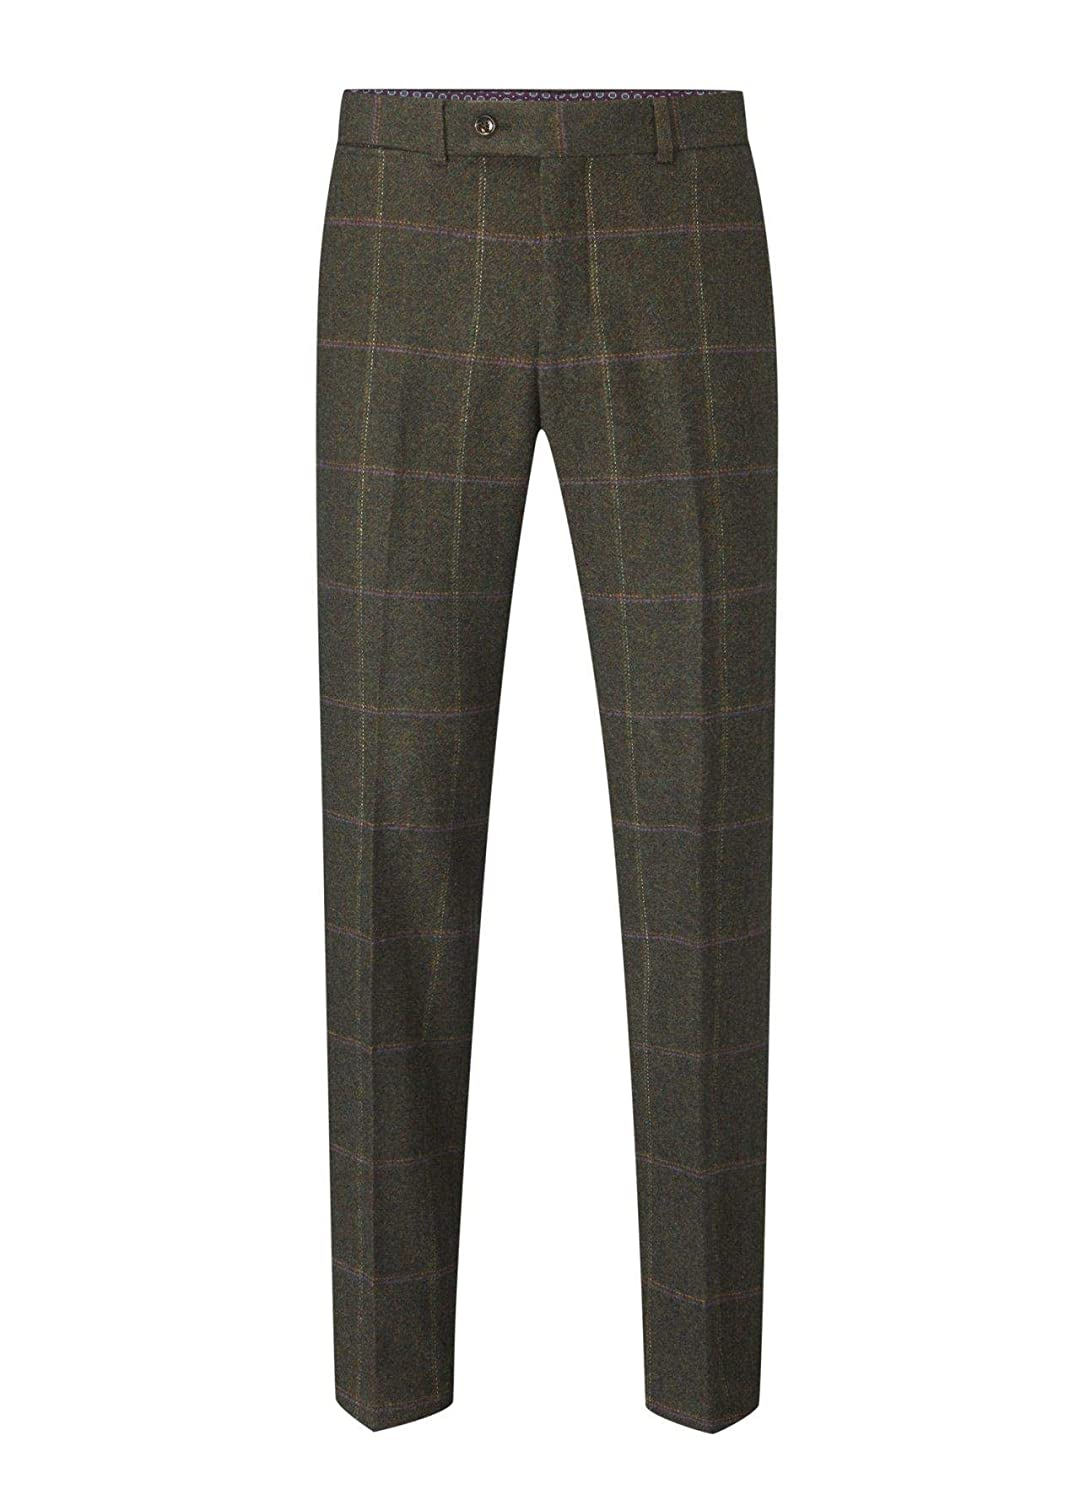 Morfe Skopes Mens Big Size Suit Trousers in Lovat Check